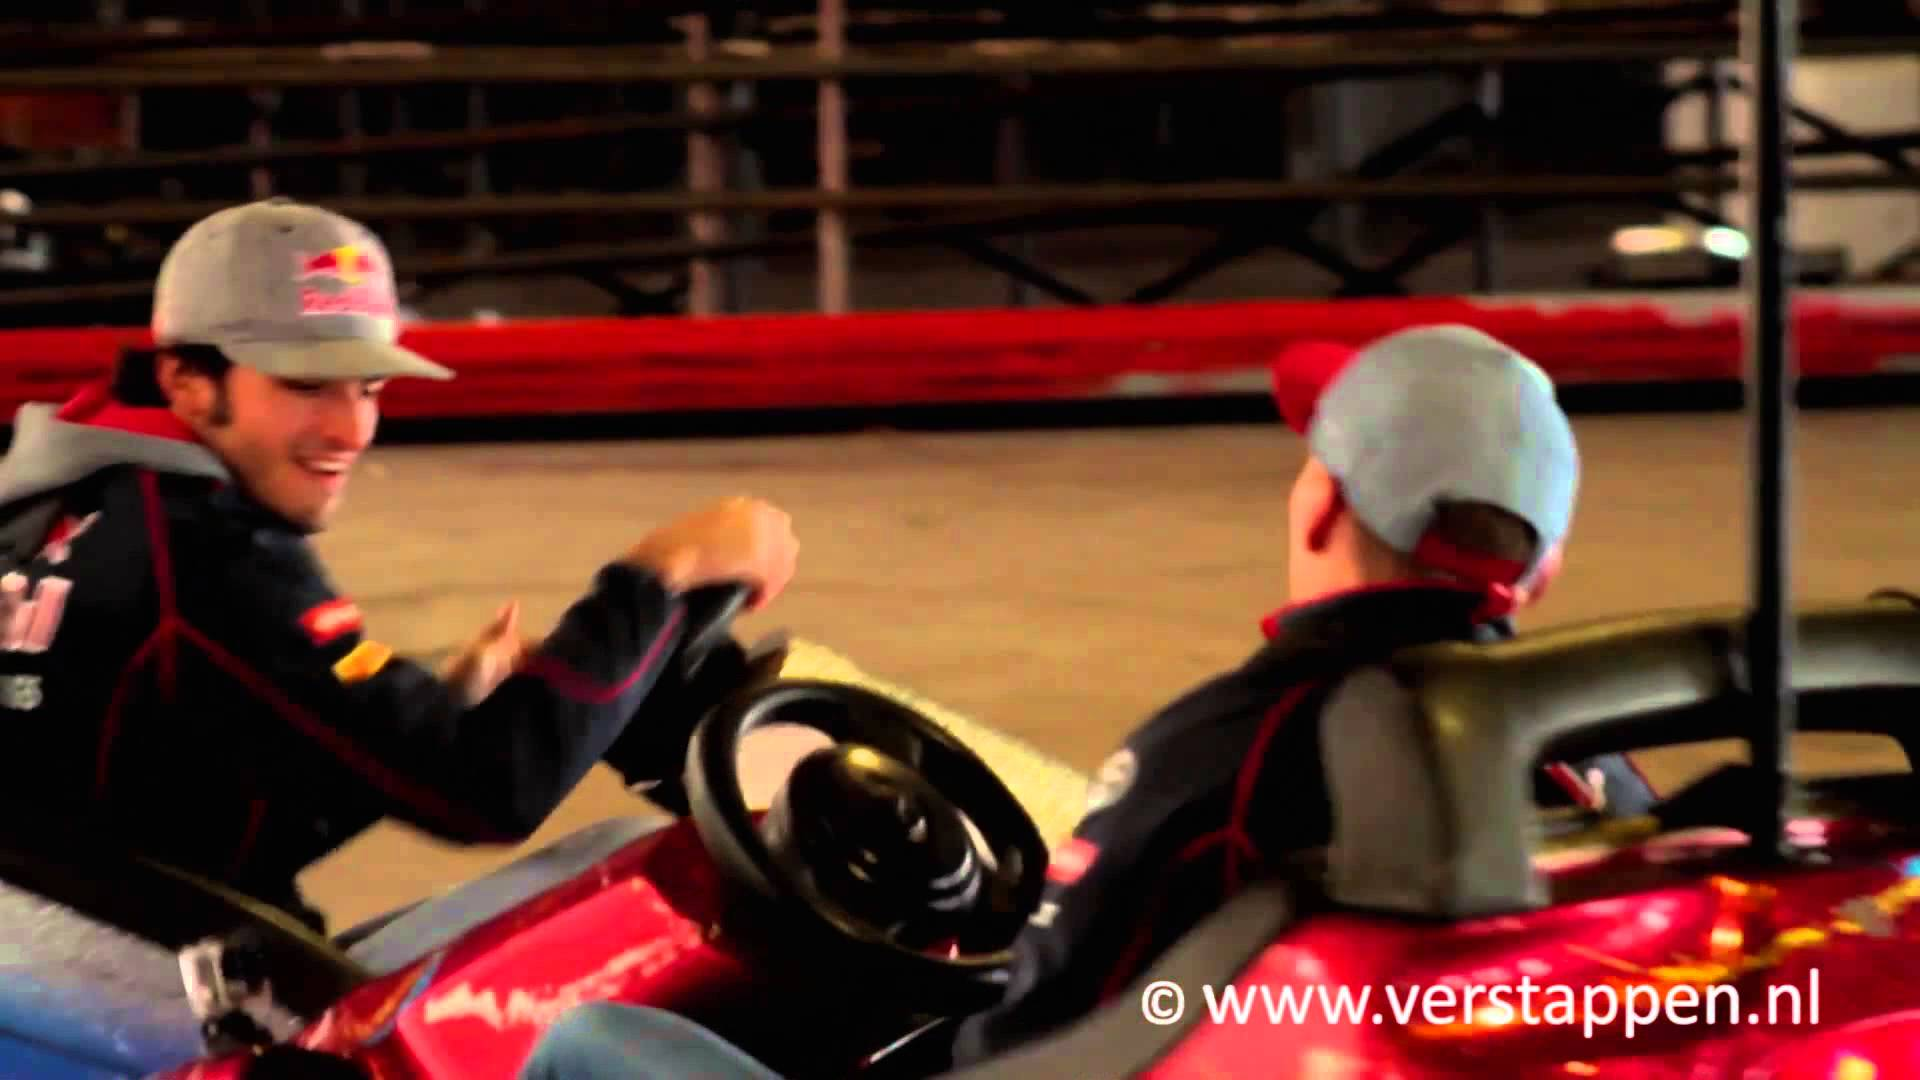 Behind the scenes at Tibidabo, with Max Verstappen and Carlos Sainz, in Barcelona (17/02/2015)